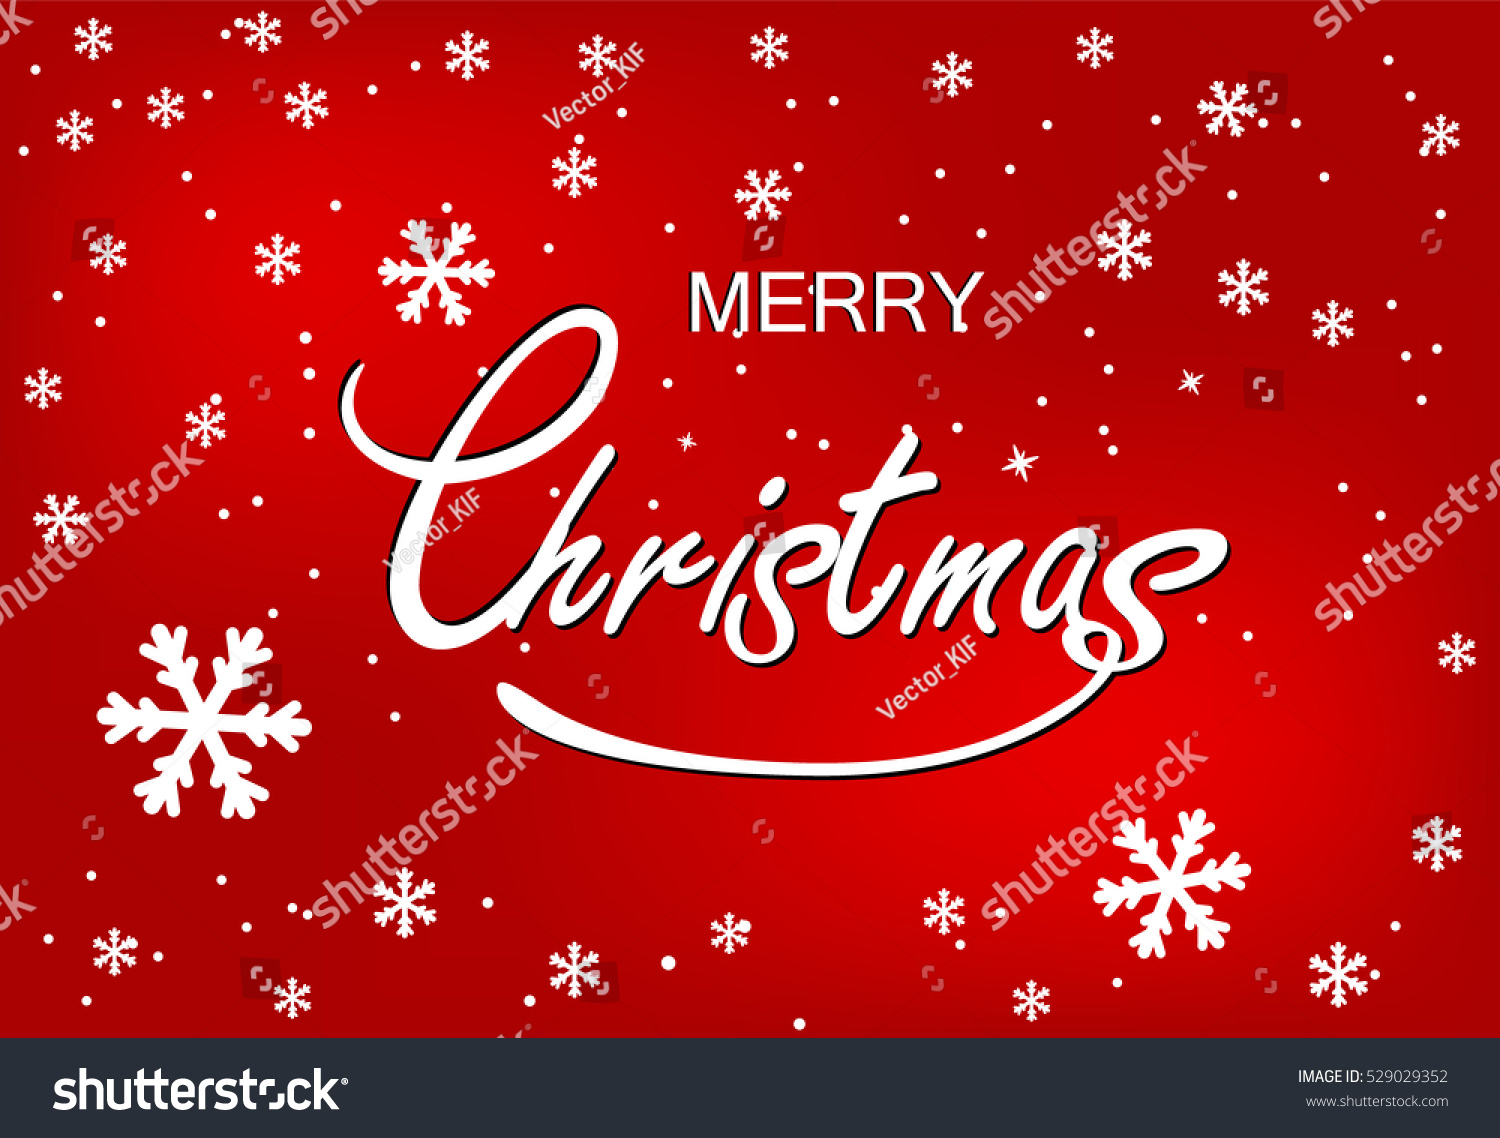 Merry christmas greeting postcard white snowflakes stock vector merry christmas greeting postcard white snowflakes and greeting words on red background m4hsunfo